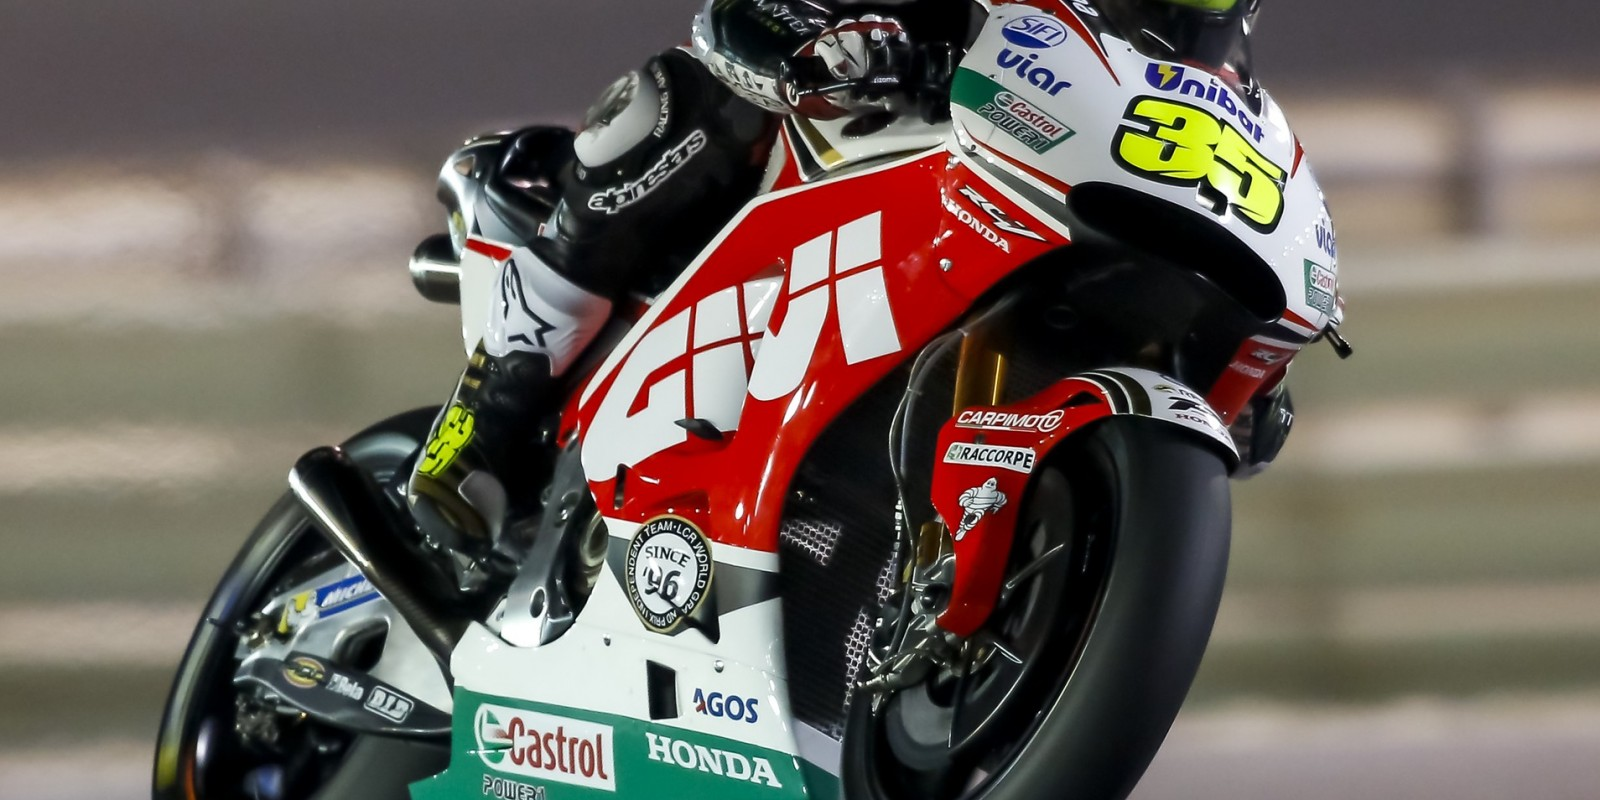 Cal Crutchlow at the 2016 MotoGP Qatar test, Thursday Free practice